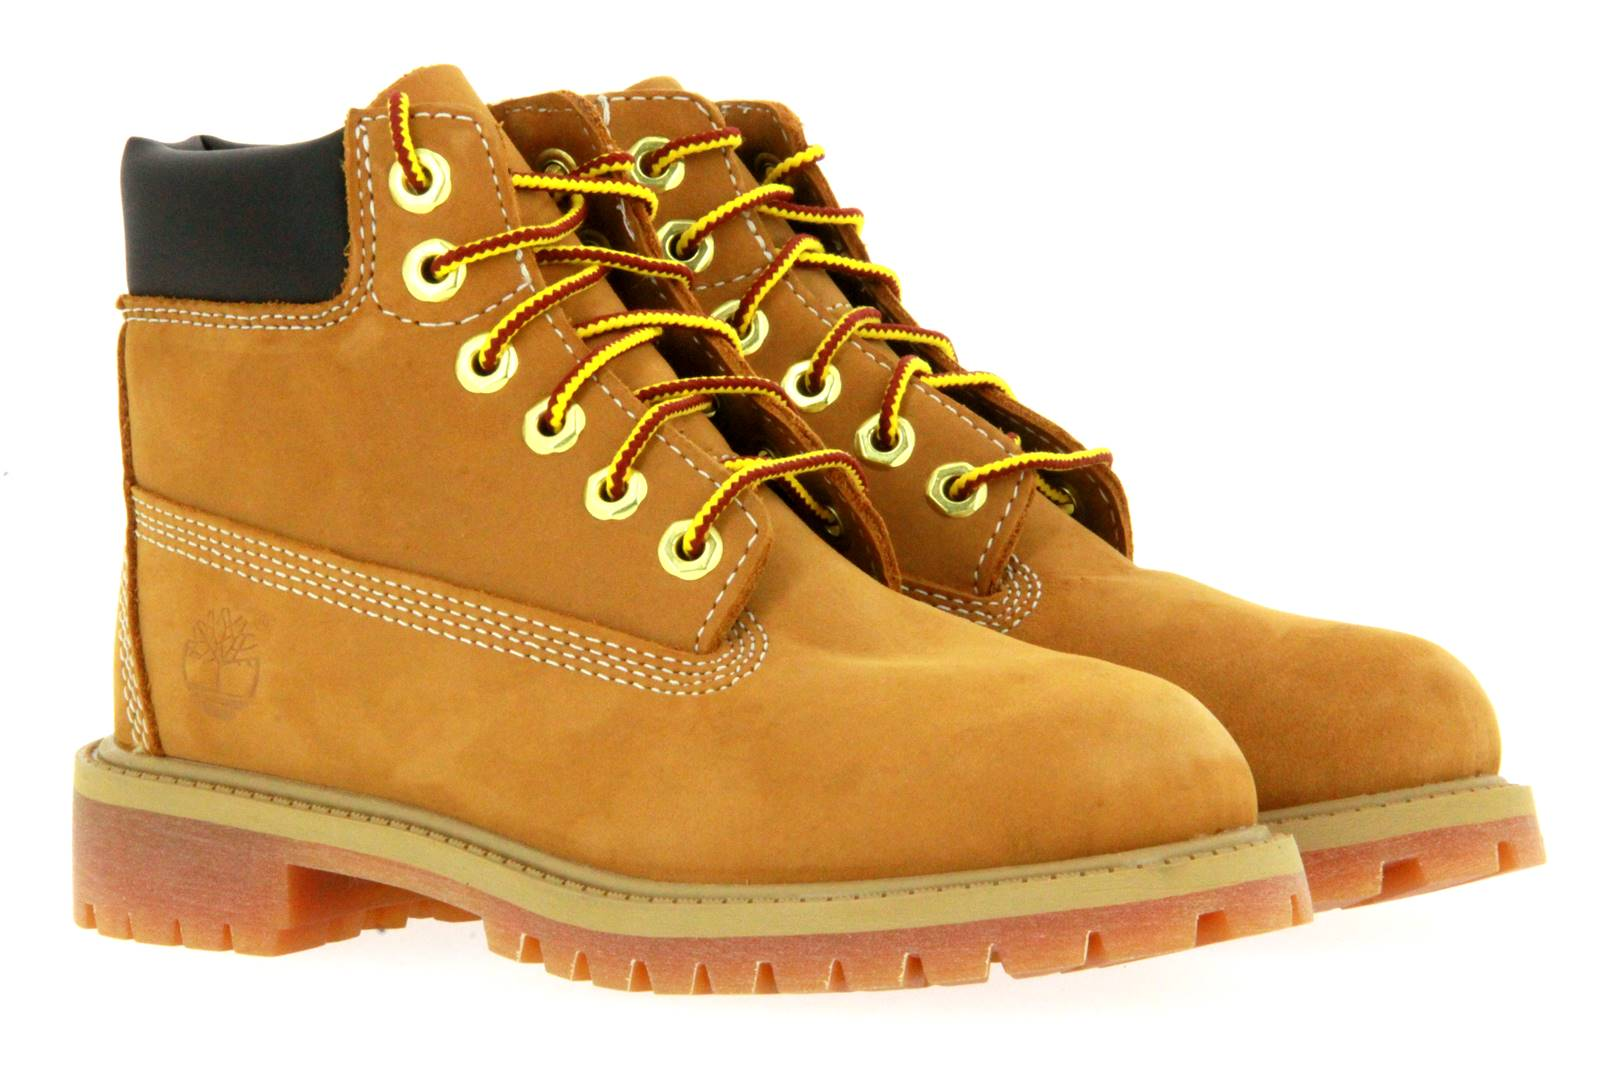 Timberland Boots JUNIOR 6 INCH PREMIUM WHEAT NUBUK YELLOW (33)